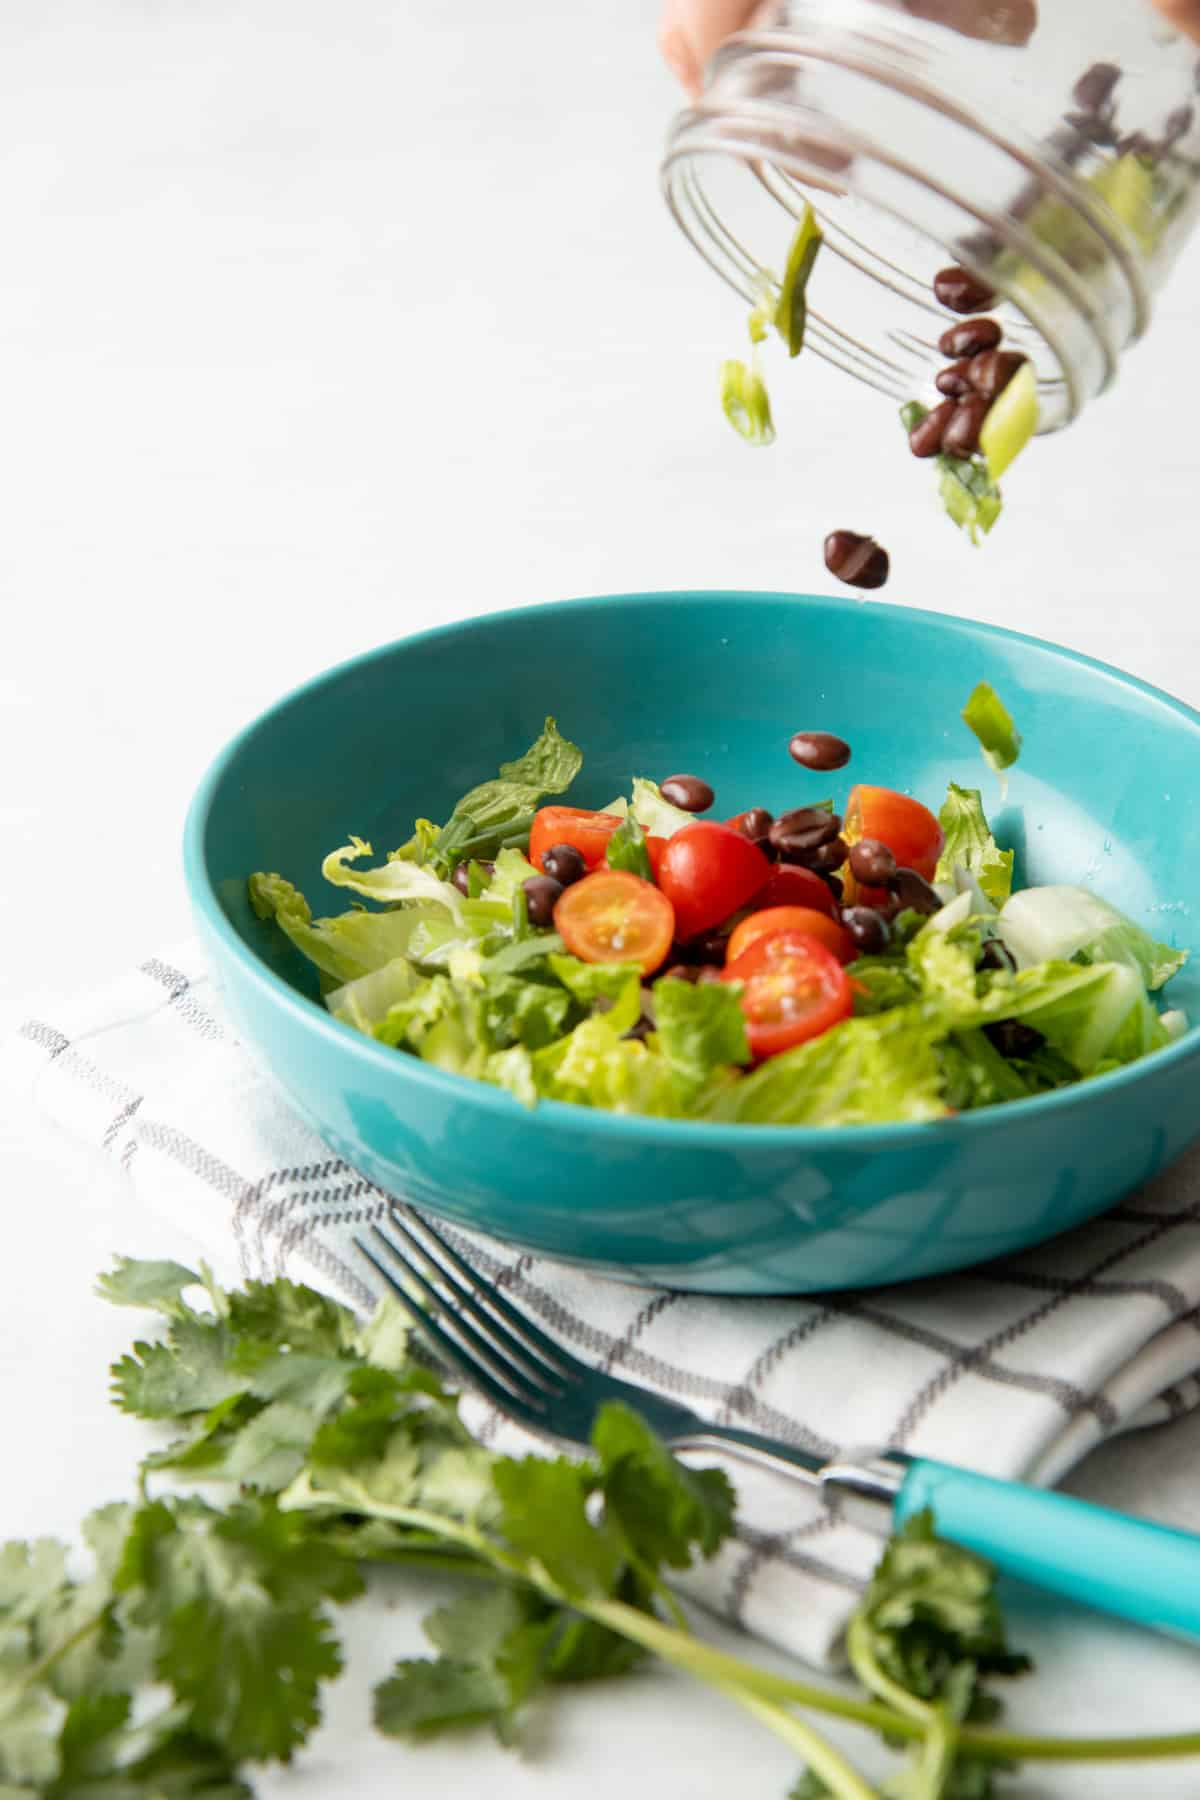 A hand pours a salad from a jar into a teal bowl. The bowl sits on a white and brown plaid dishtowel. A fork with a teal handle sits to the side of the bowl.